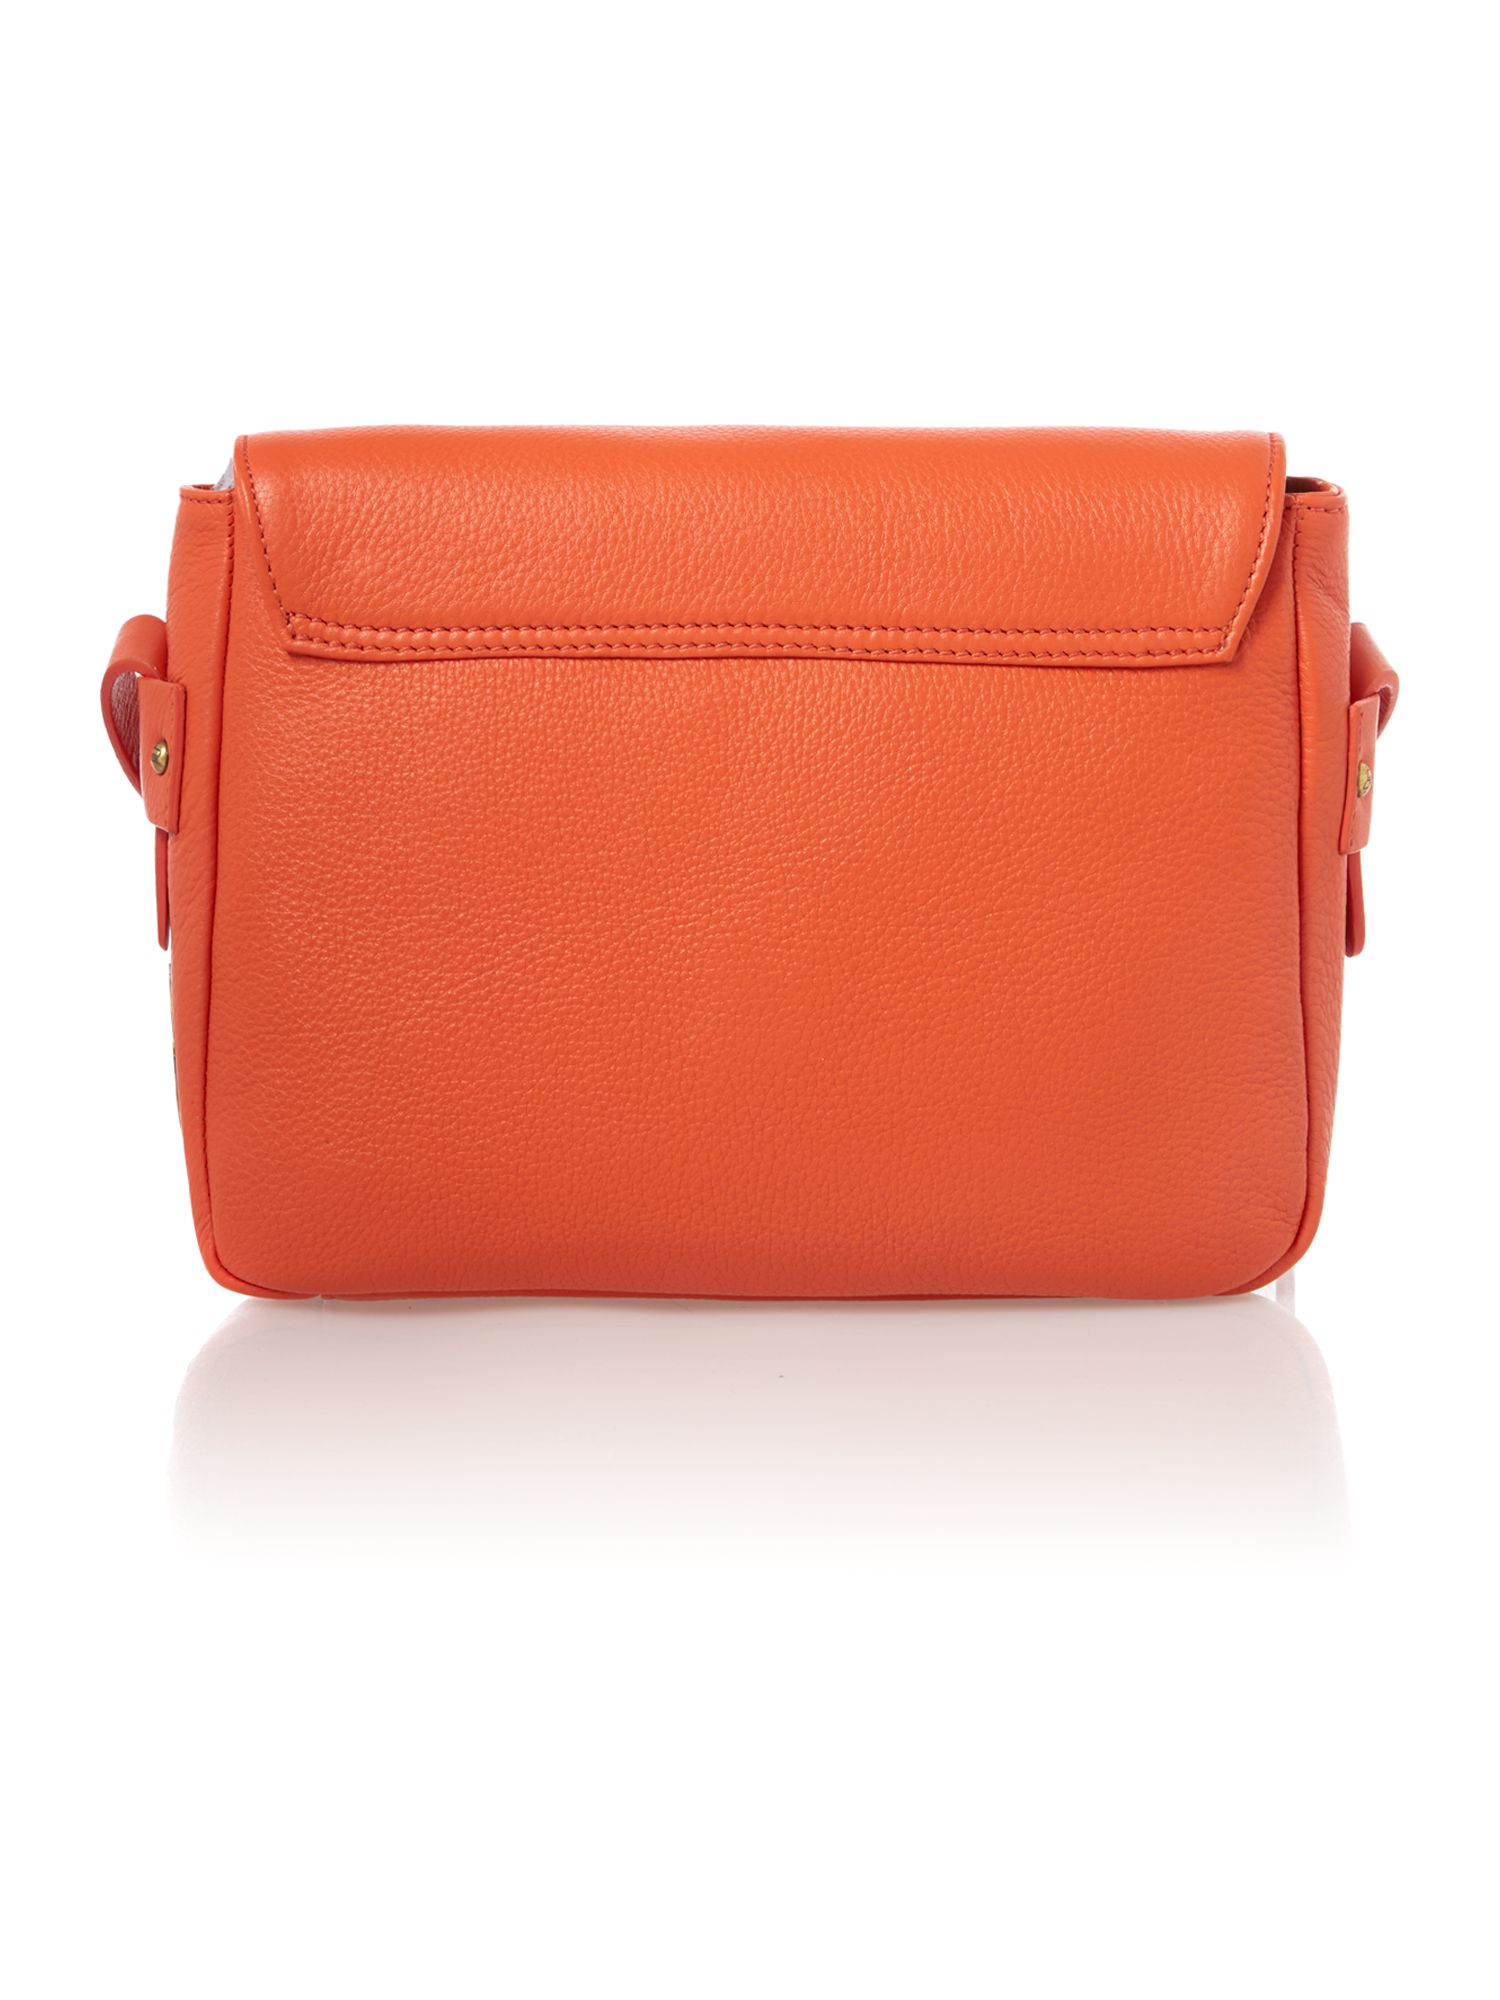 Cranleigh orange cross body bag